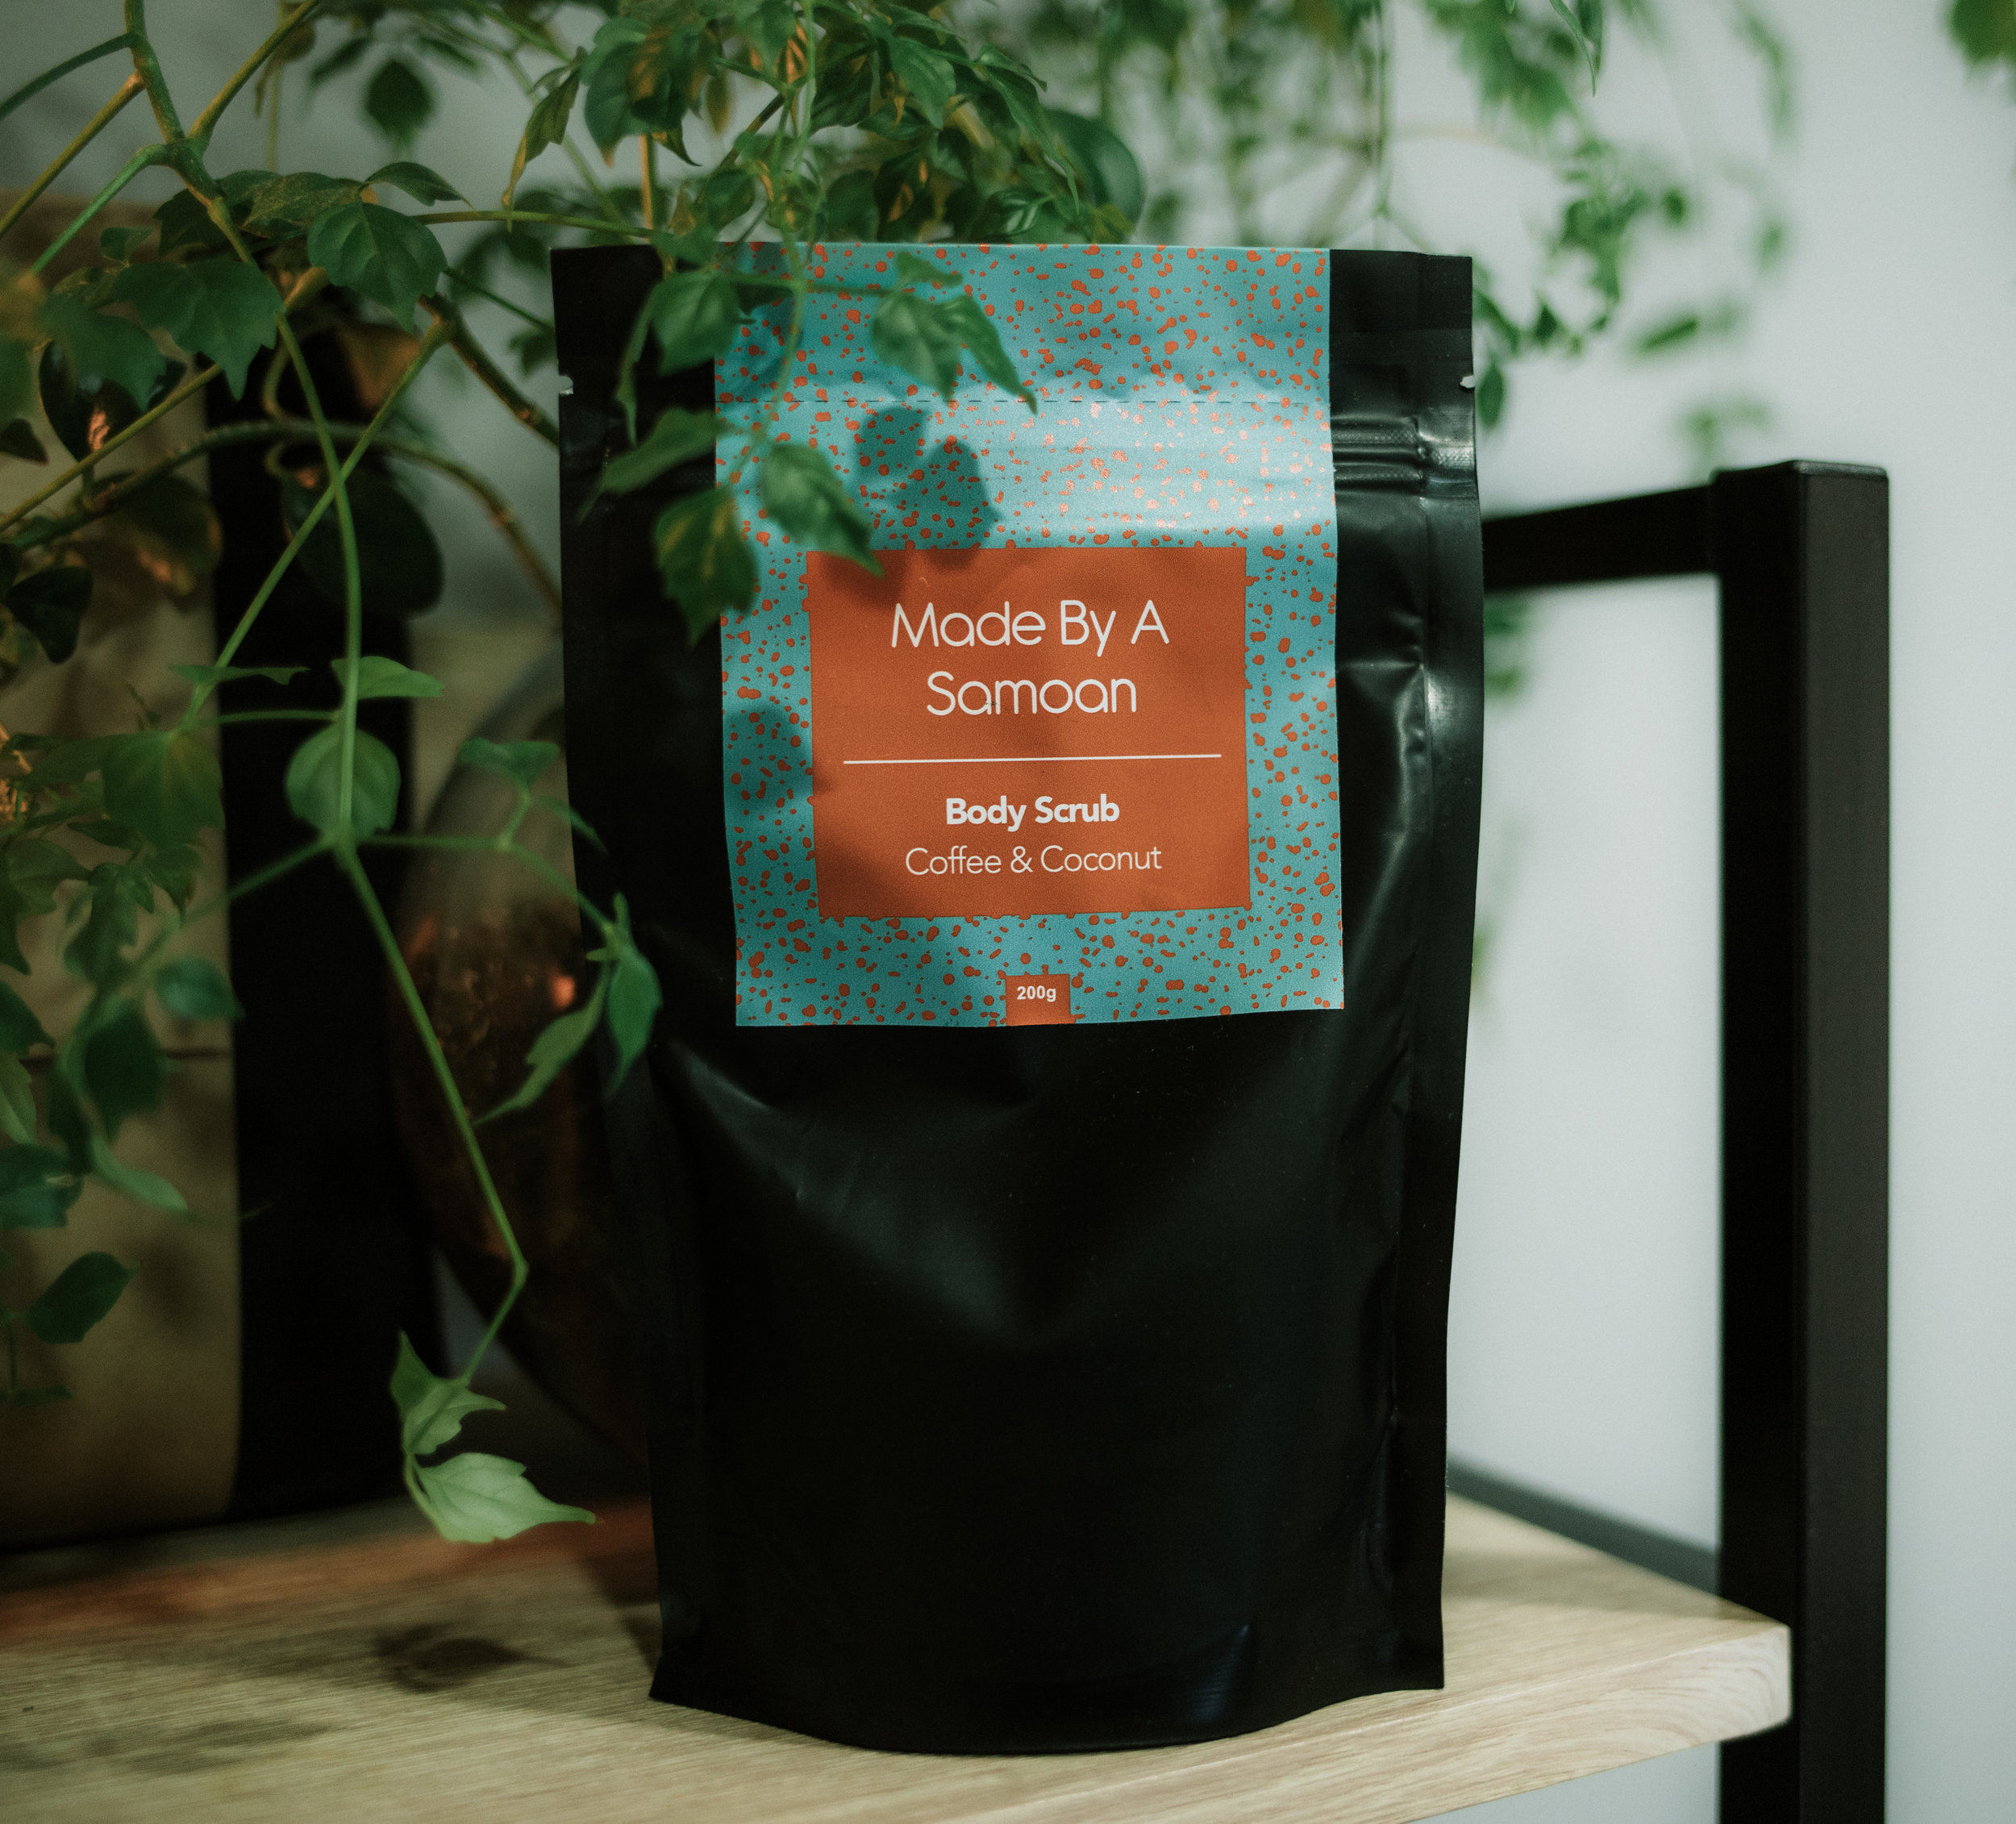 Made by a Samoan Coffee Scrub | $25 - I'm a rich body scrub packed full of natural antioxidants. It's my job to get rid of dry skin and moisturise at the same time.Local roasters L'affare share the love with their organic coffee beans from Peru.Use this lil' bag o' goodness in the shower 2-3 time a week on clean skin & rinse well.100% natural, vegan & always cruelty free.NZ made!*available in coconut or lemongrass scents.What's Inside:Organic Fairtrade Single Origin Coffee Beans (Peru)Organic Fairtrade Golden Raw Sugar (India)Organic Raw Virgin Coconut Oil (Samoa)Natural Extra Virgin Olive Oil (NZ)Natural Vitamin E (Argentina)